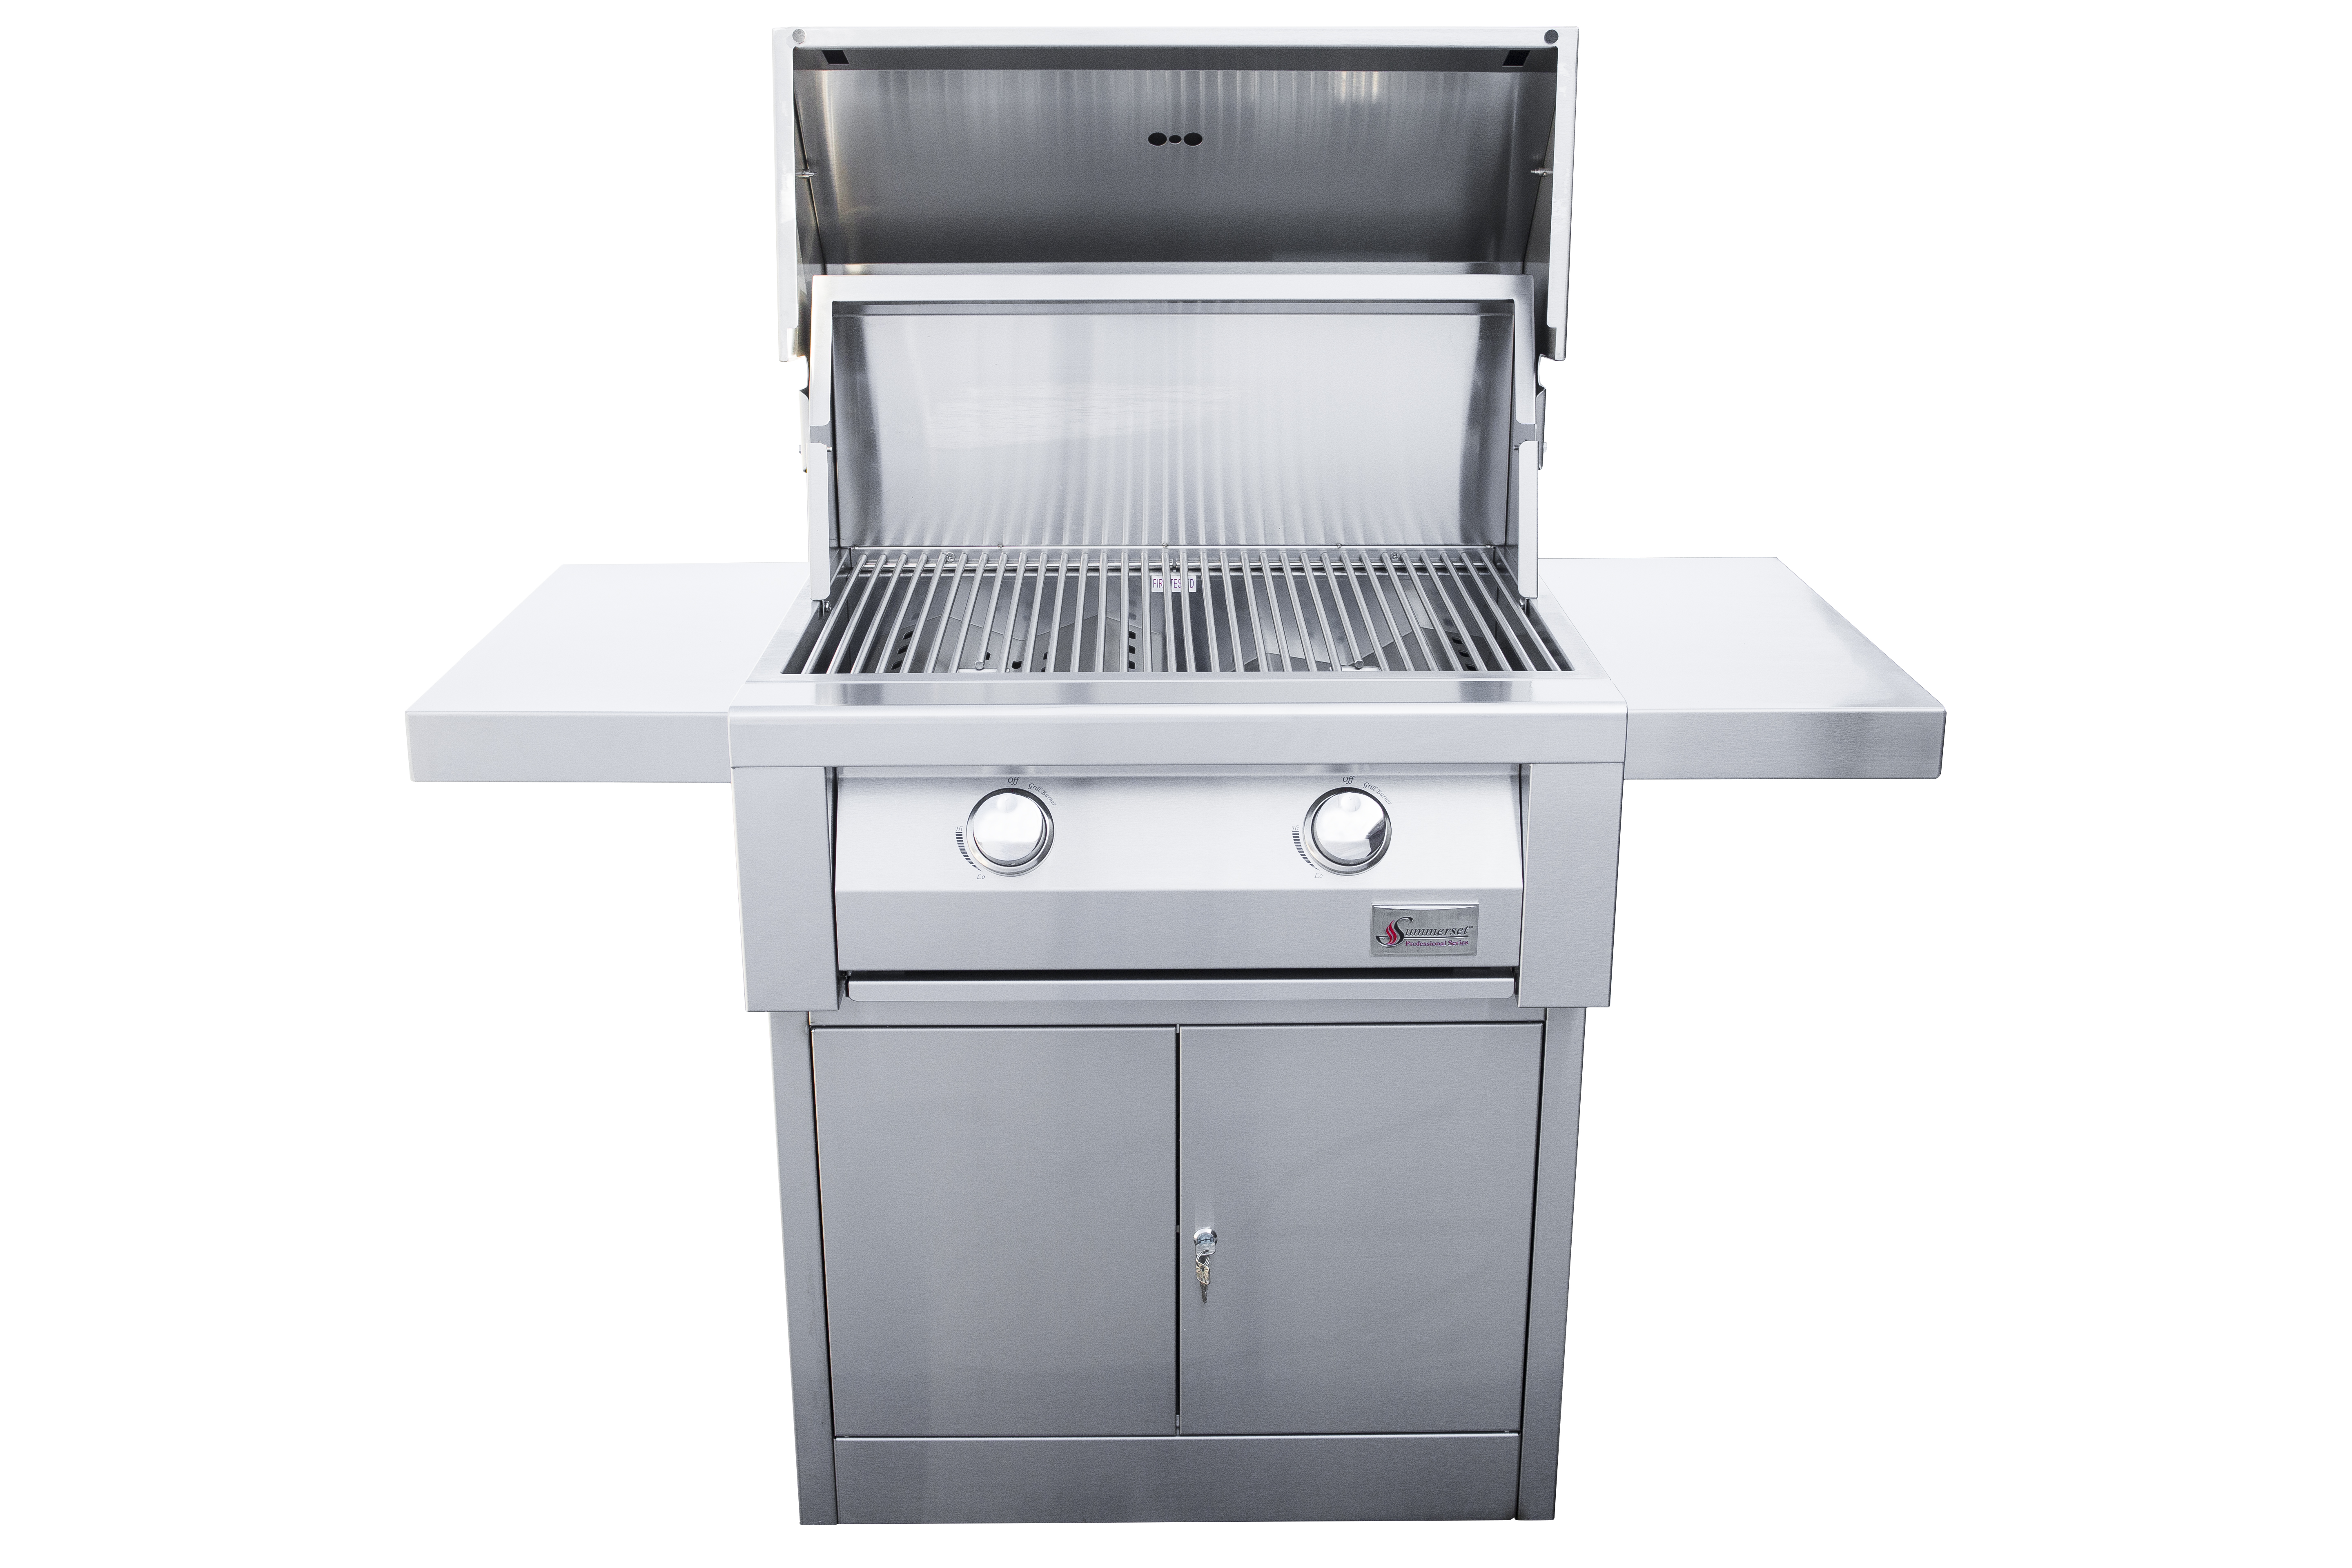 Summerset Commercial Residence & Hotel Grills - TheGrillFather.com